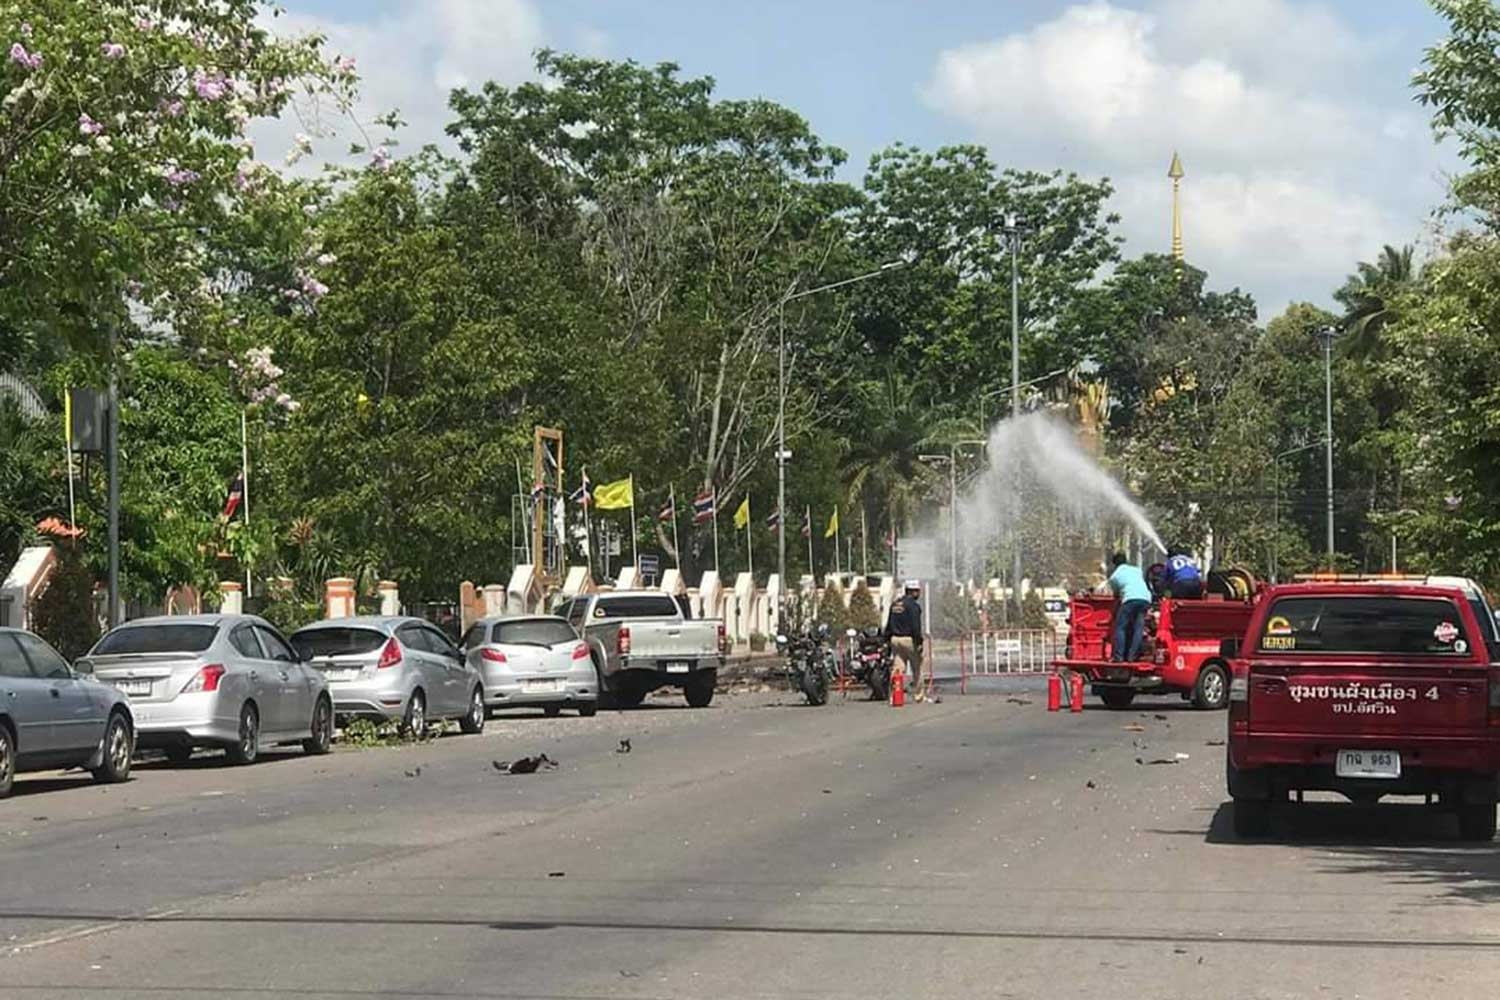 The scene outside the Southern Border Provinces Administrative Centre in Muang district of Yala province after two bombs, one concealed in a pickup, exploded there on Tuesday morning. Several people were injured - including police and reporters. (Photo supplied)